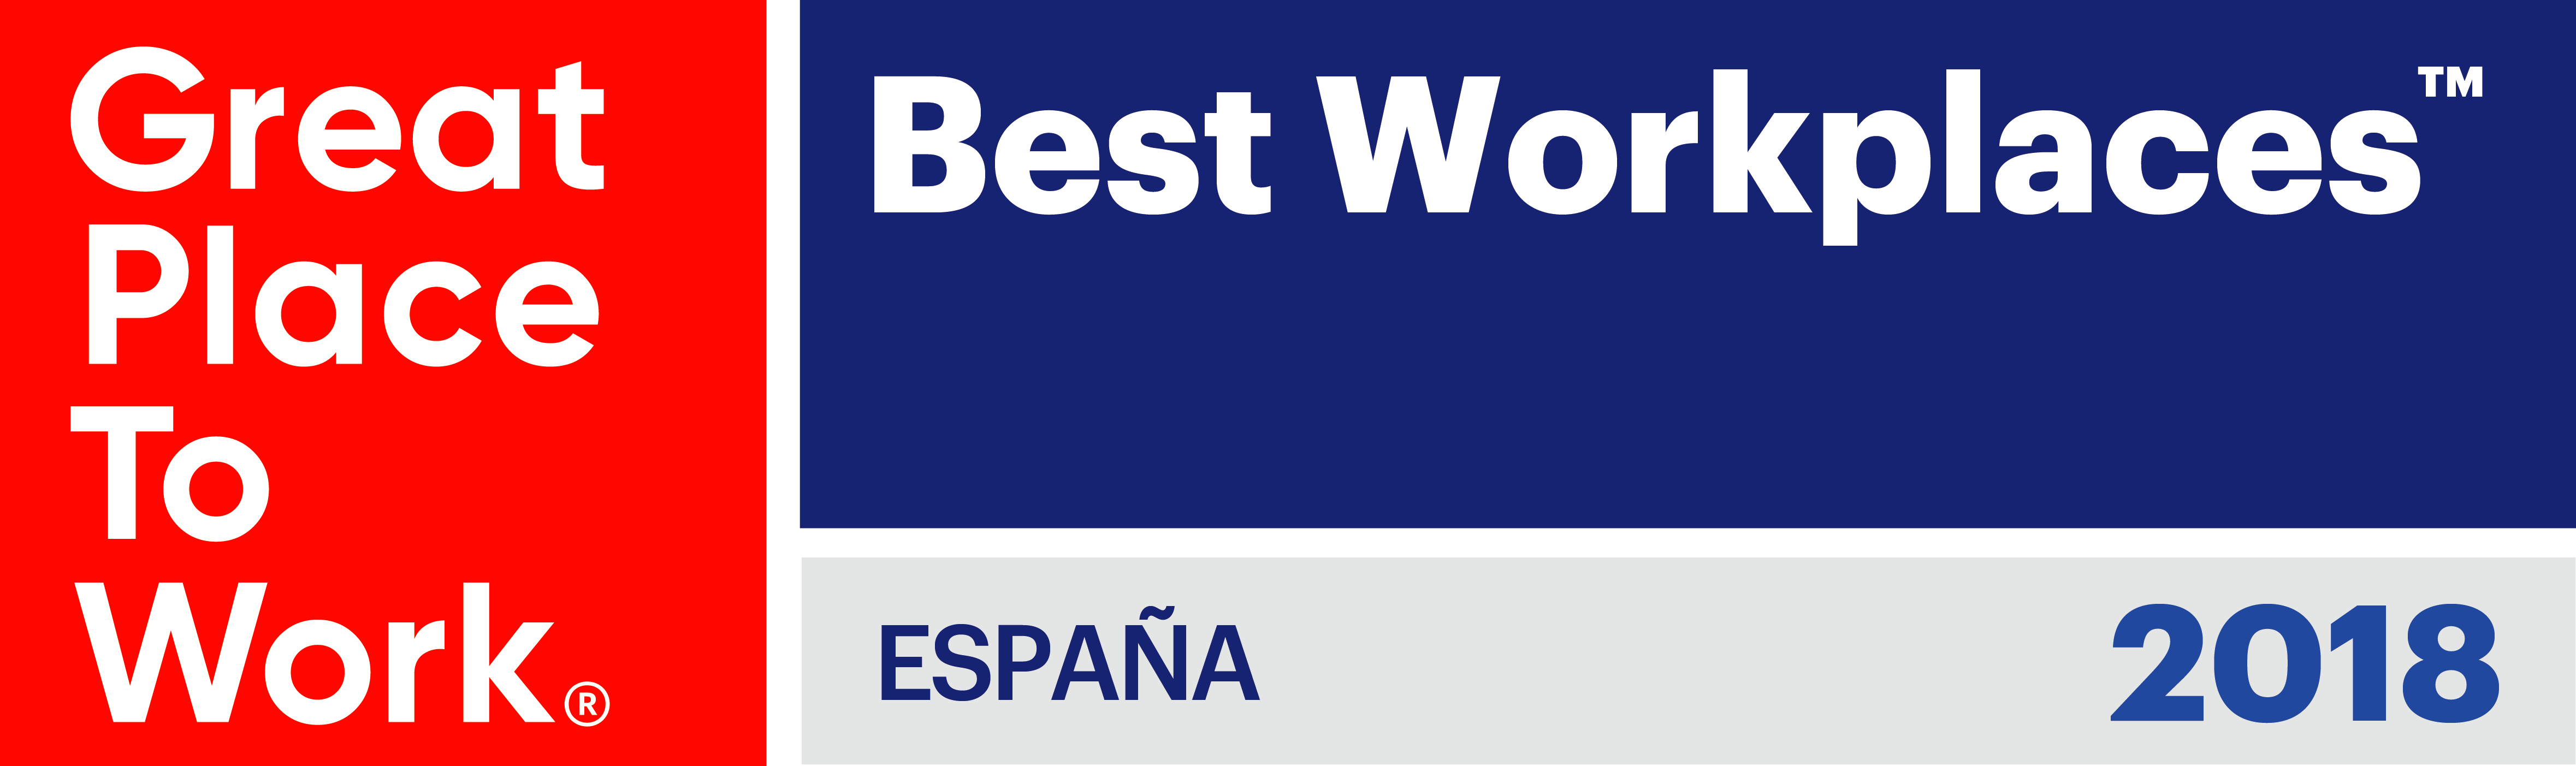 Best Workplaces - Spain_Best Workplaces - España